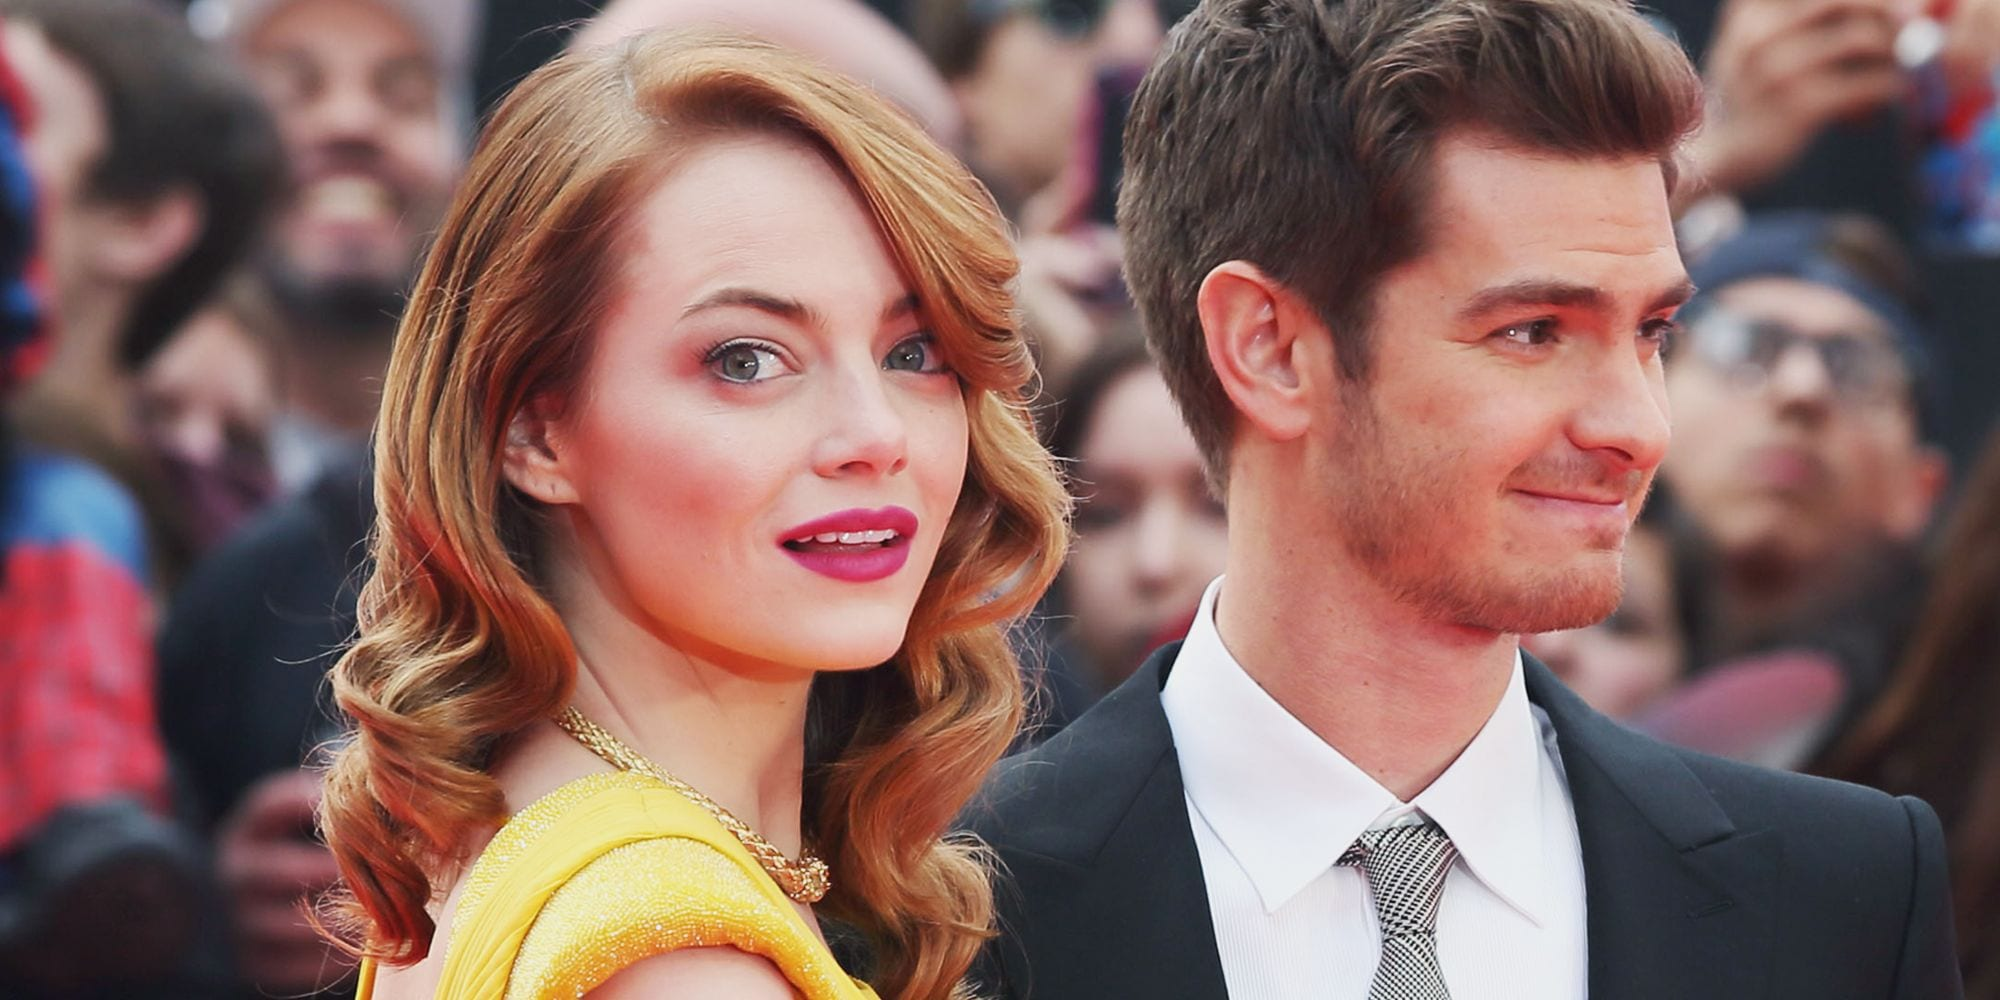 Why Did Emma Stone And Andrew Garfield Break Up?